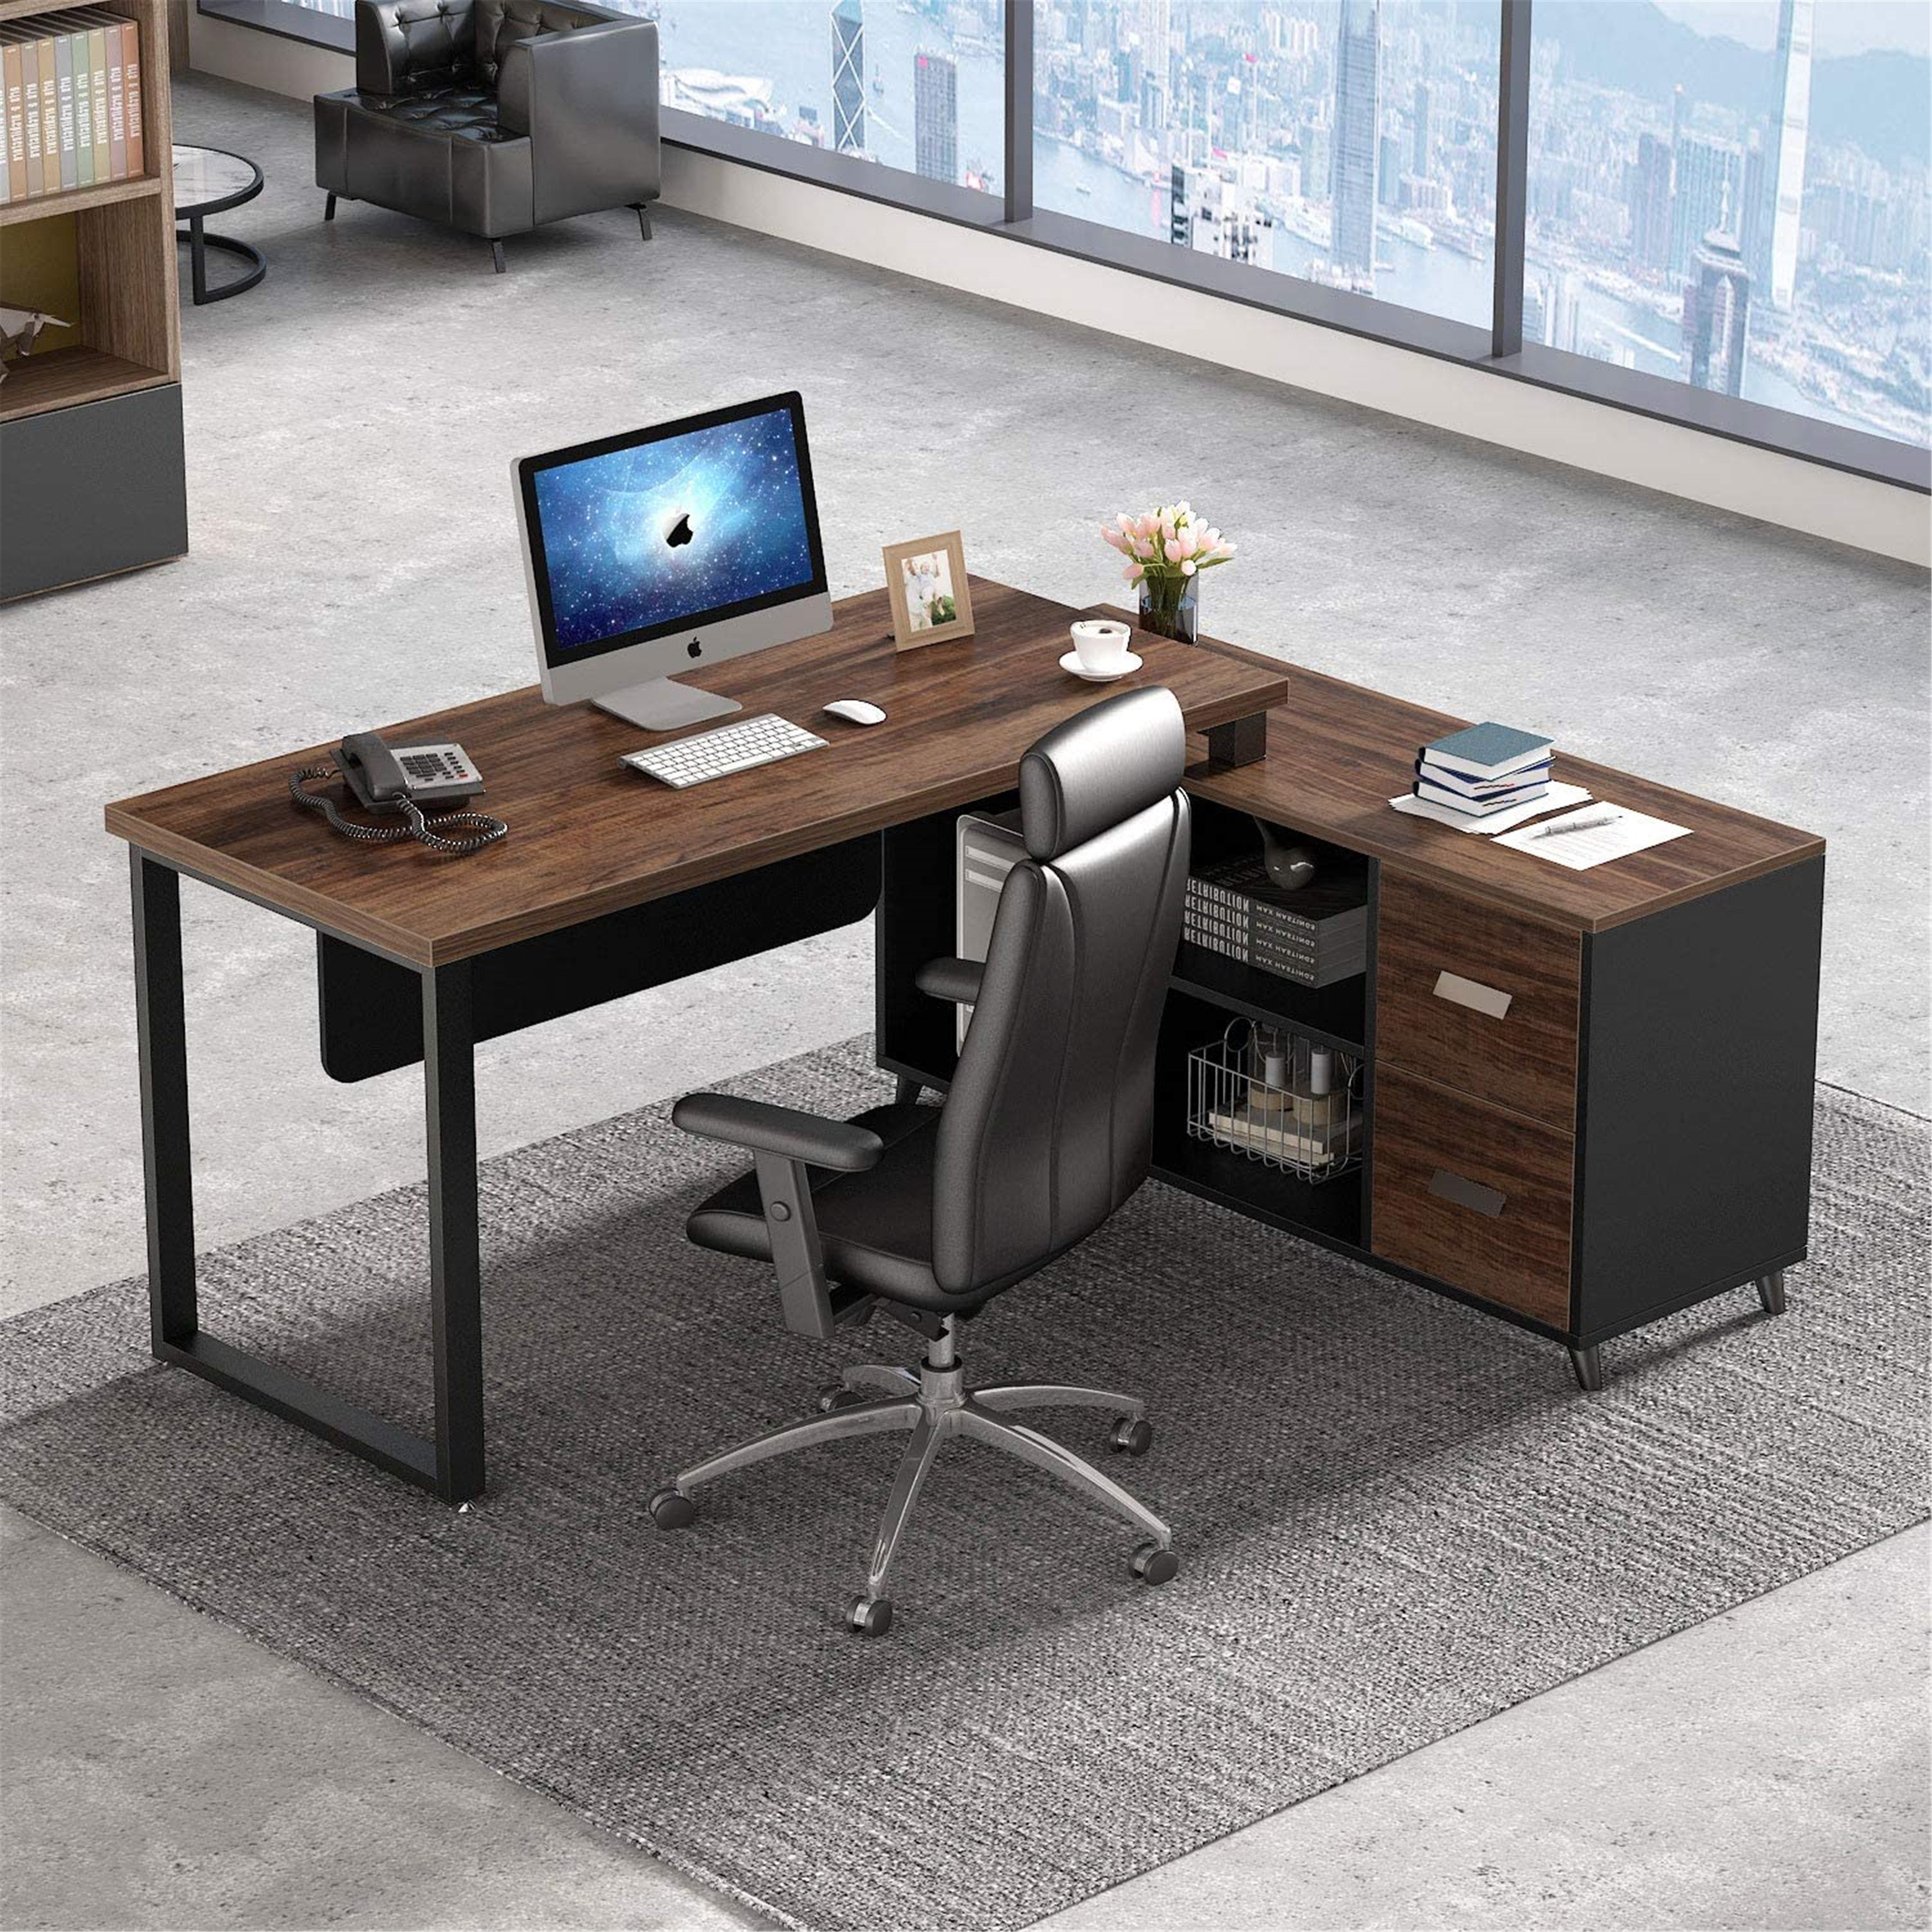 L Shaped Computer Desk Executive Office Desk With File Cabinet Black Brown Overstock 31746507